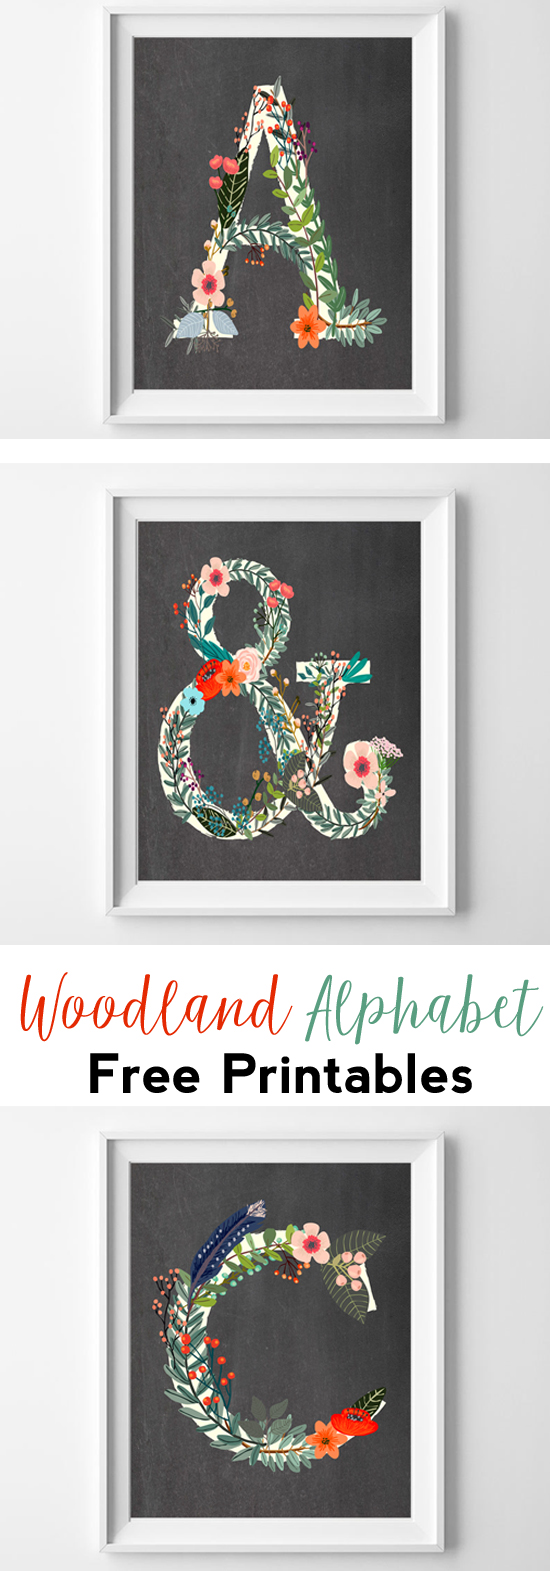 woodland alphabet free printable wall art | nursery printables | letter art